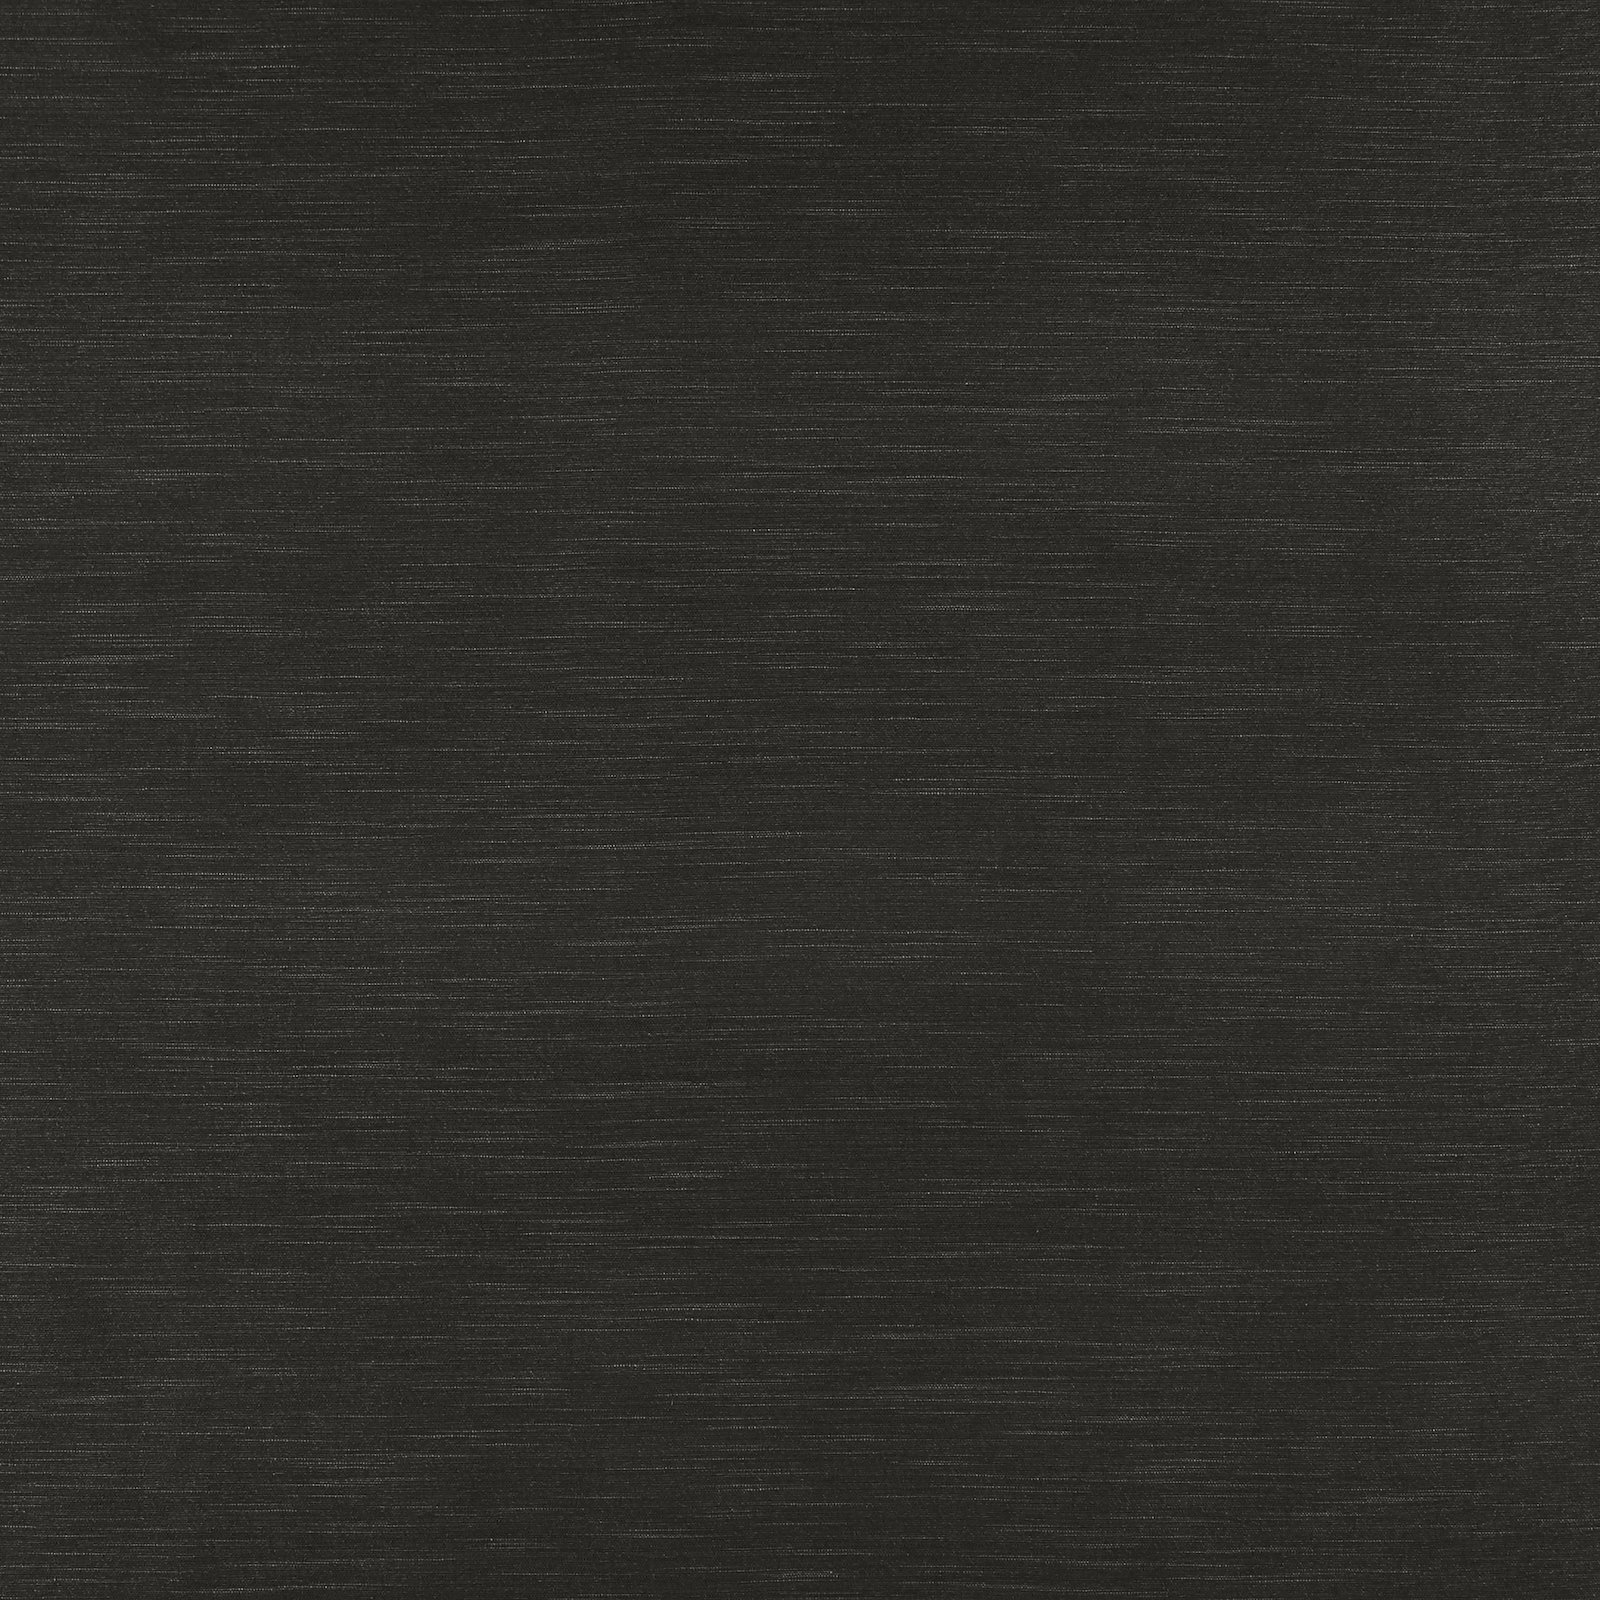 Upholstery fabric dark grey w/backing 824090_pack_solid